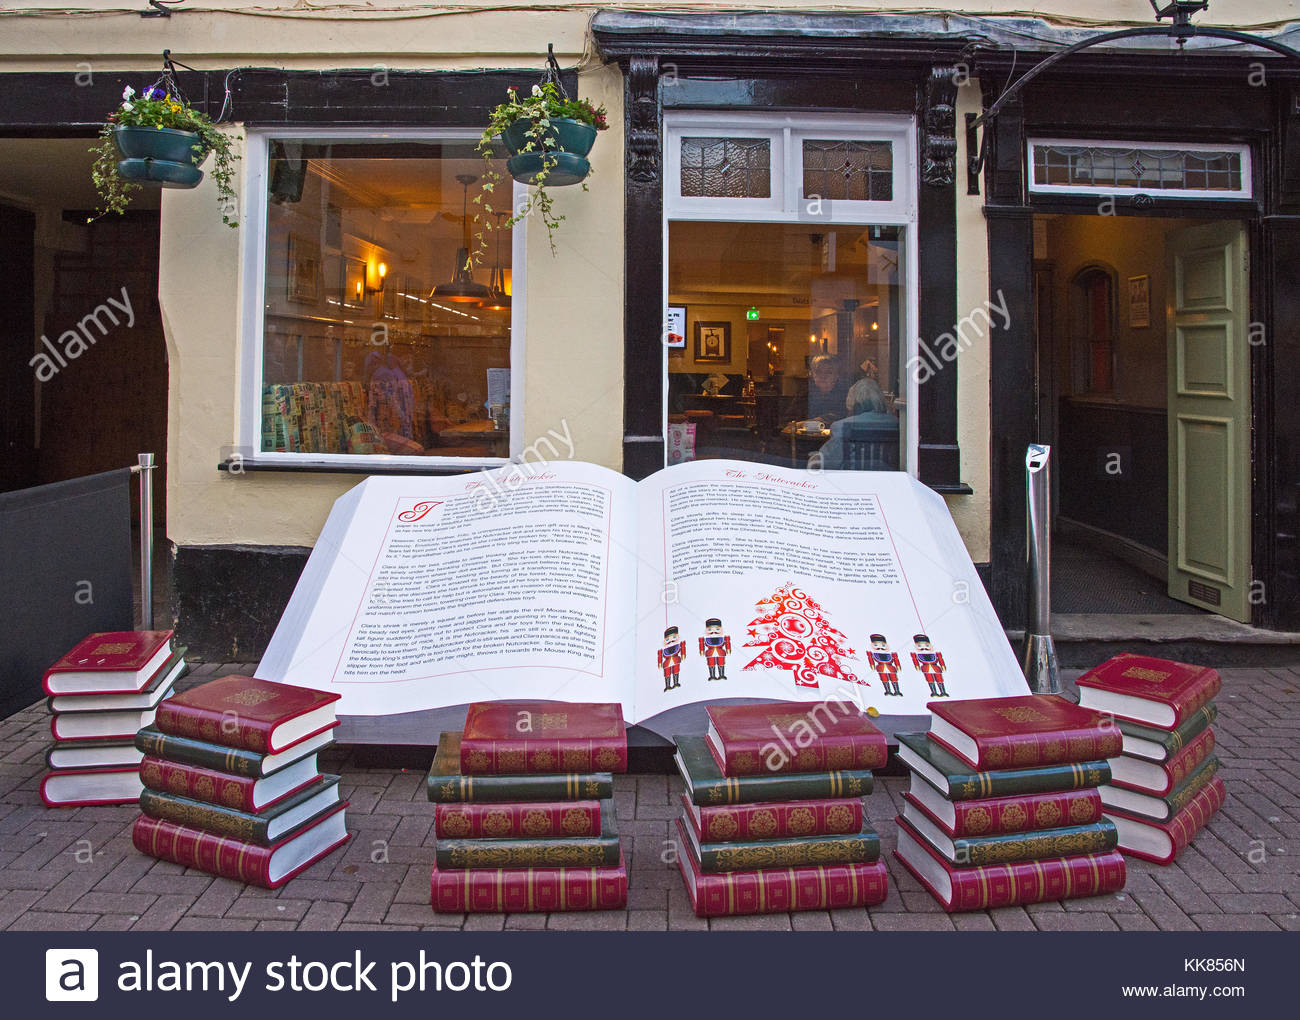 Lichfield Staffordshire England  November 28th 2017.  A huge book with the Nutcracker Christmas story outside the - Stock Image